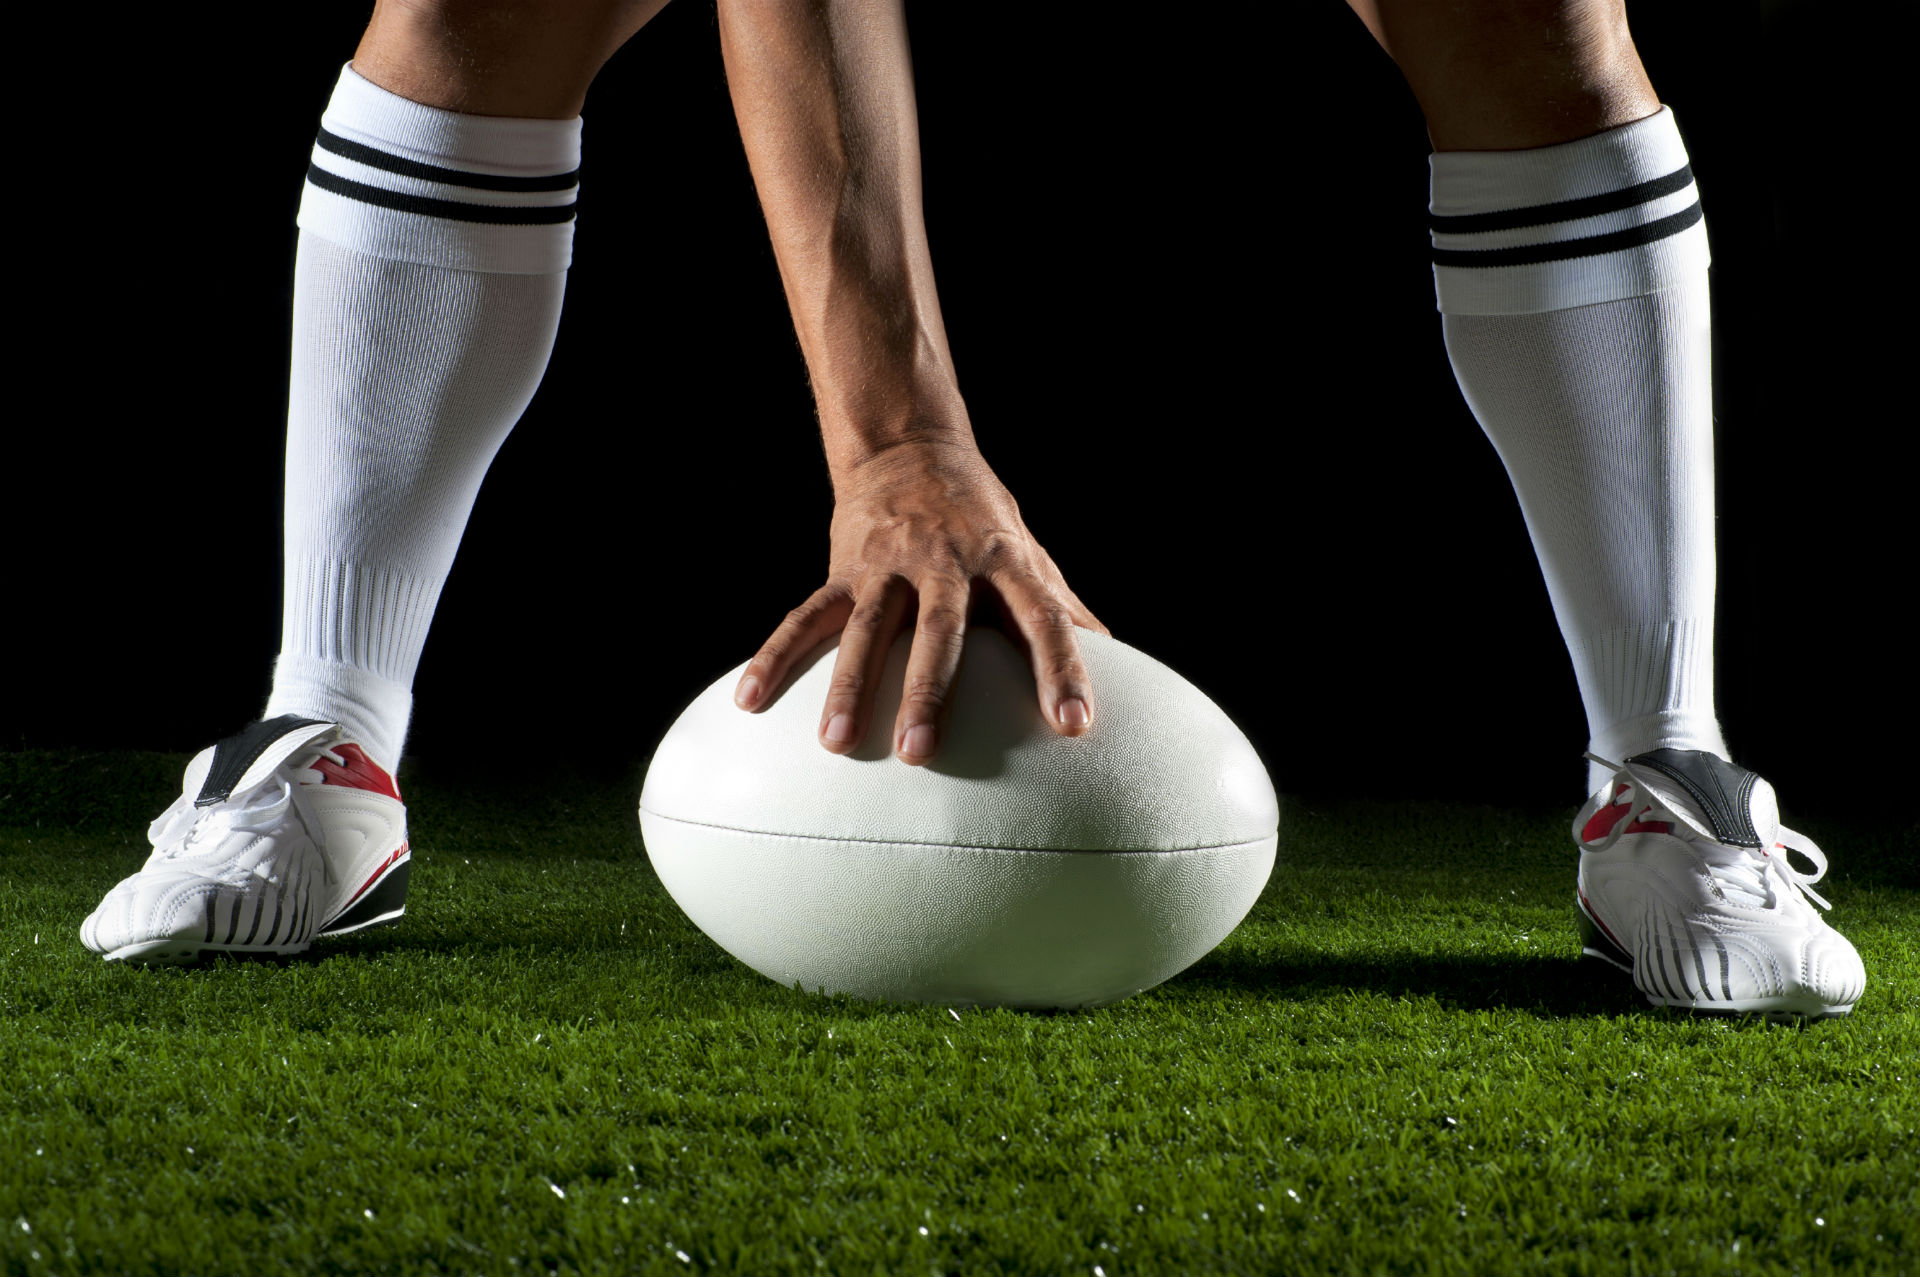 Benefit Your Business During the 2015 Rugby World Cup